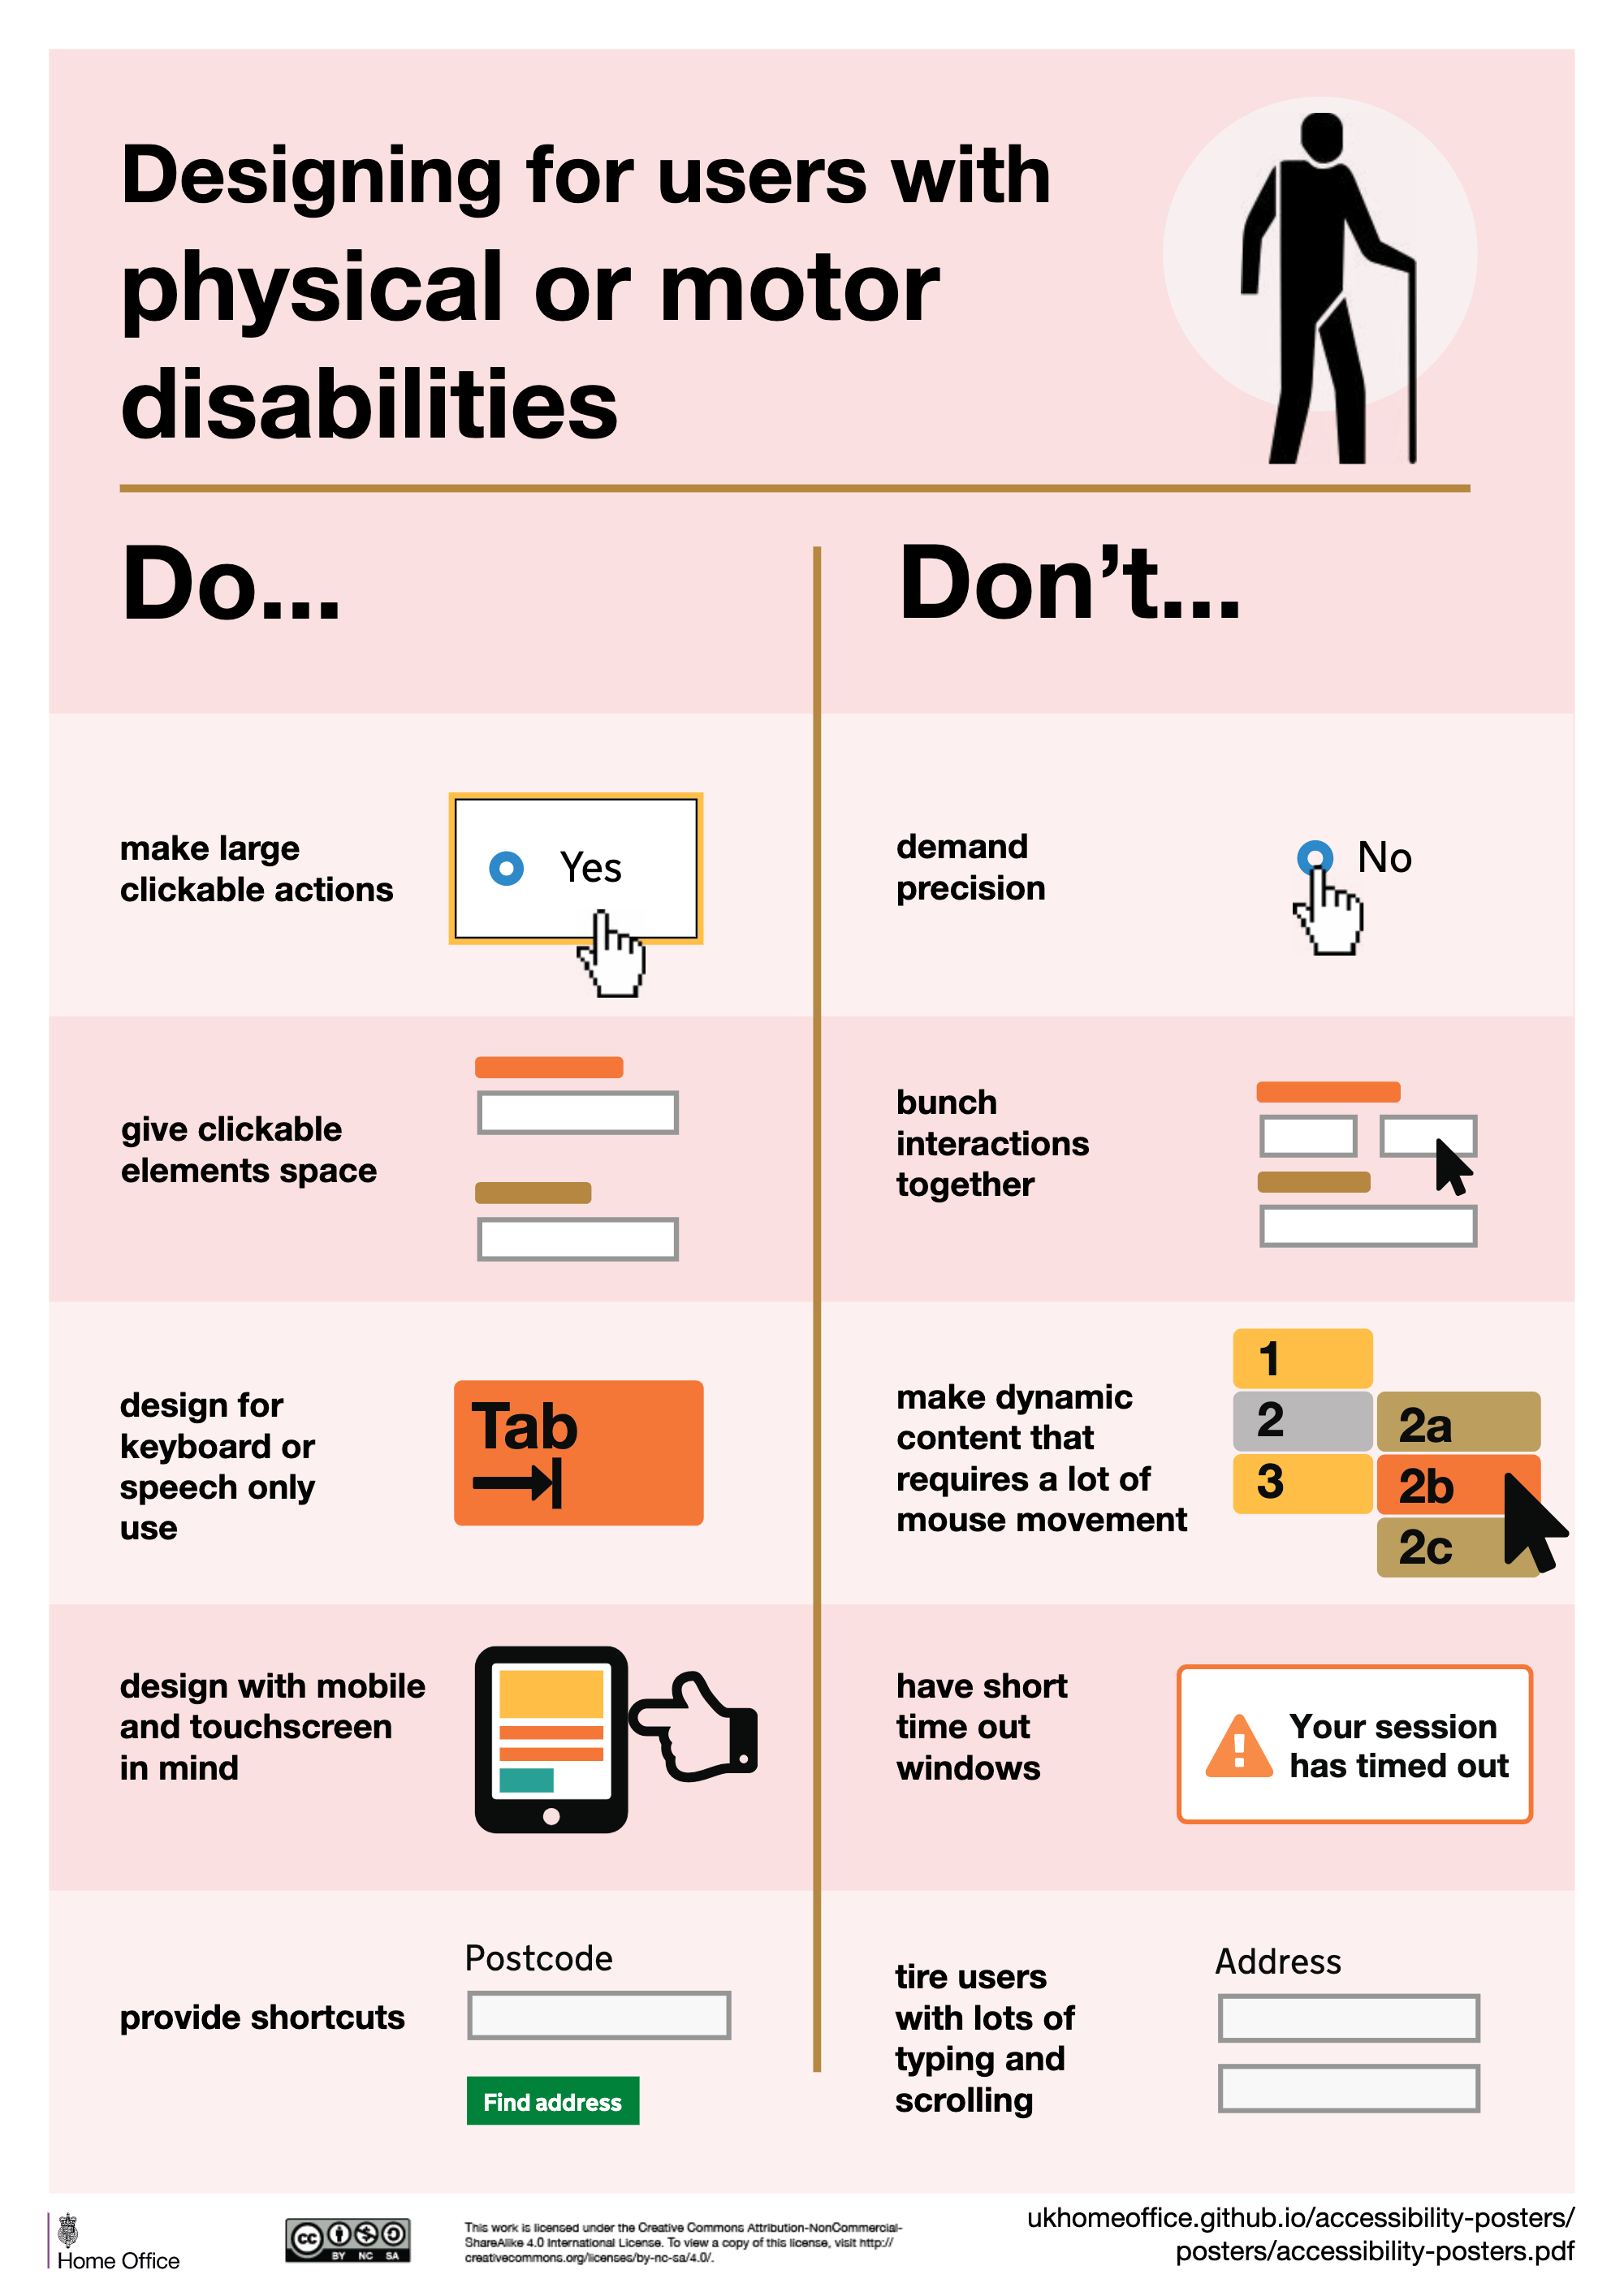 Physical or motor disabilities poster. Sorry Medium don't allow enough alt text, but you can click the link in the caption.